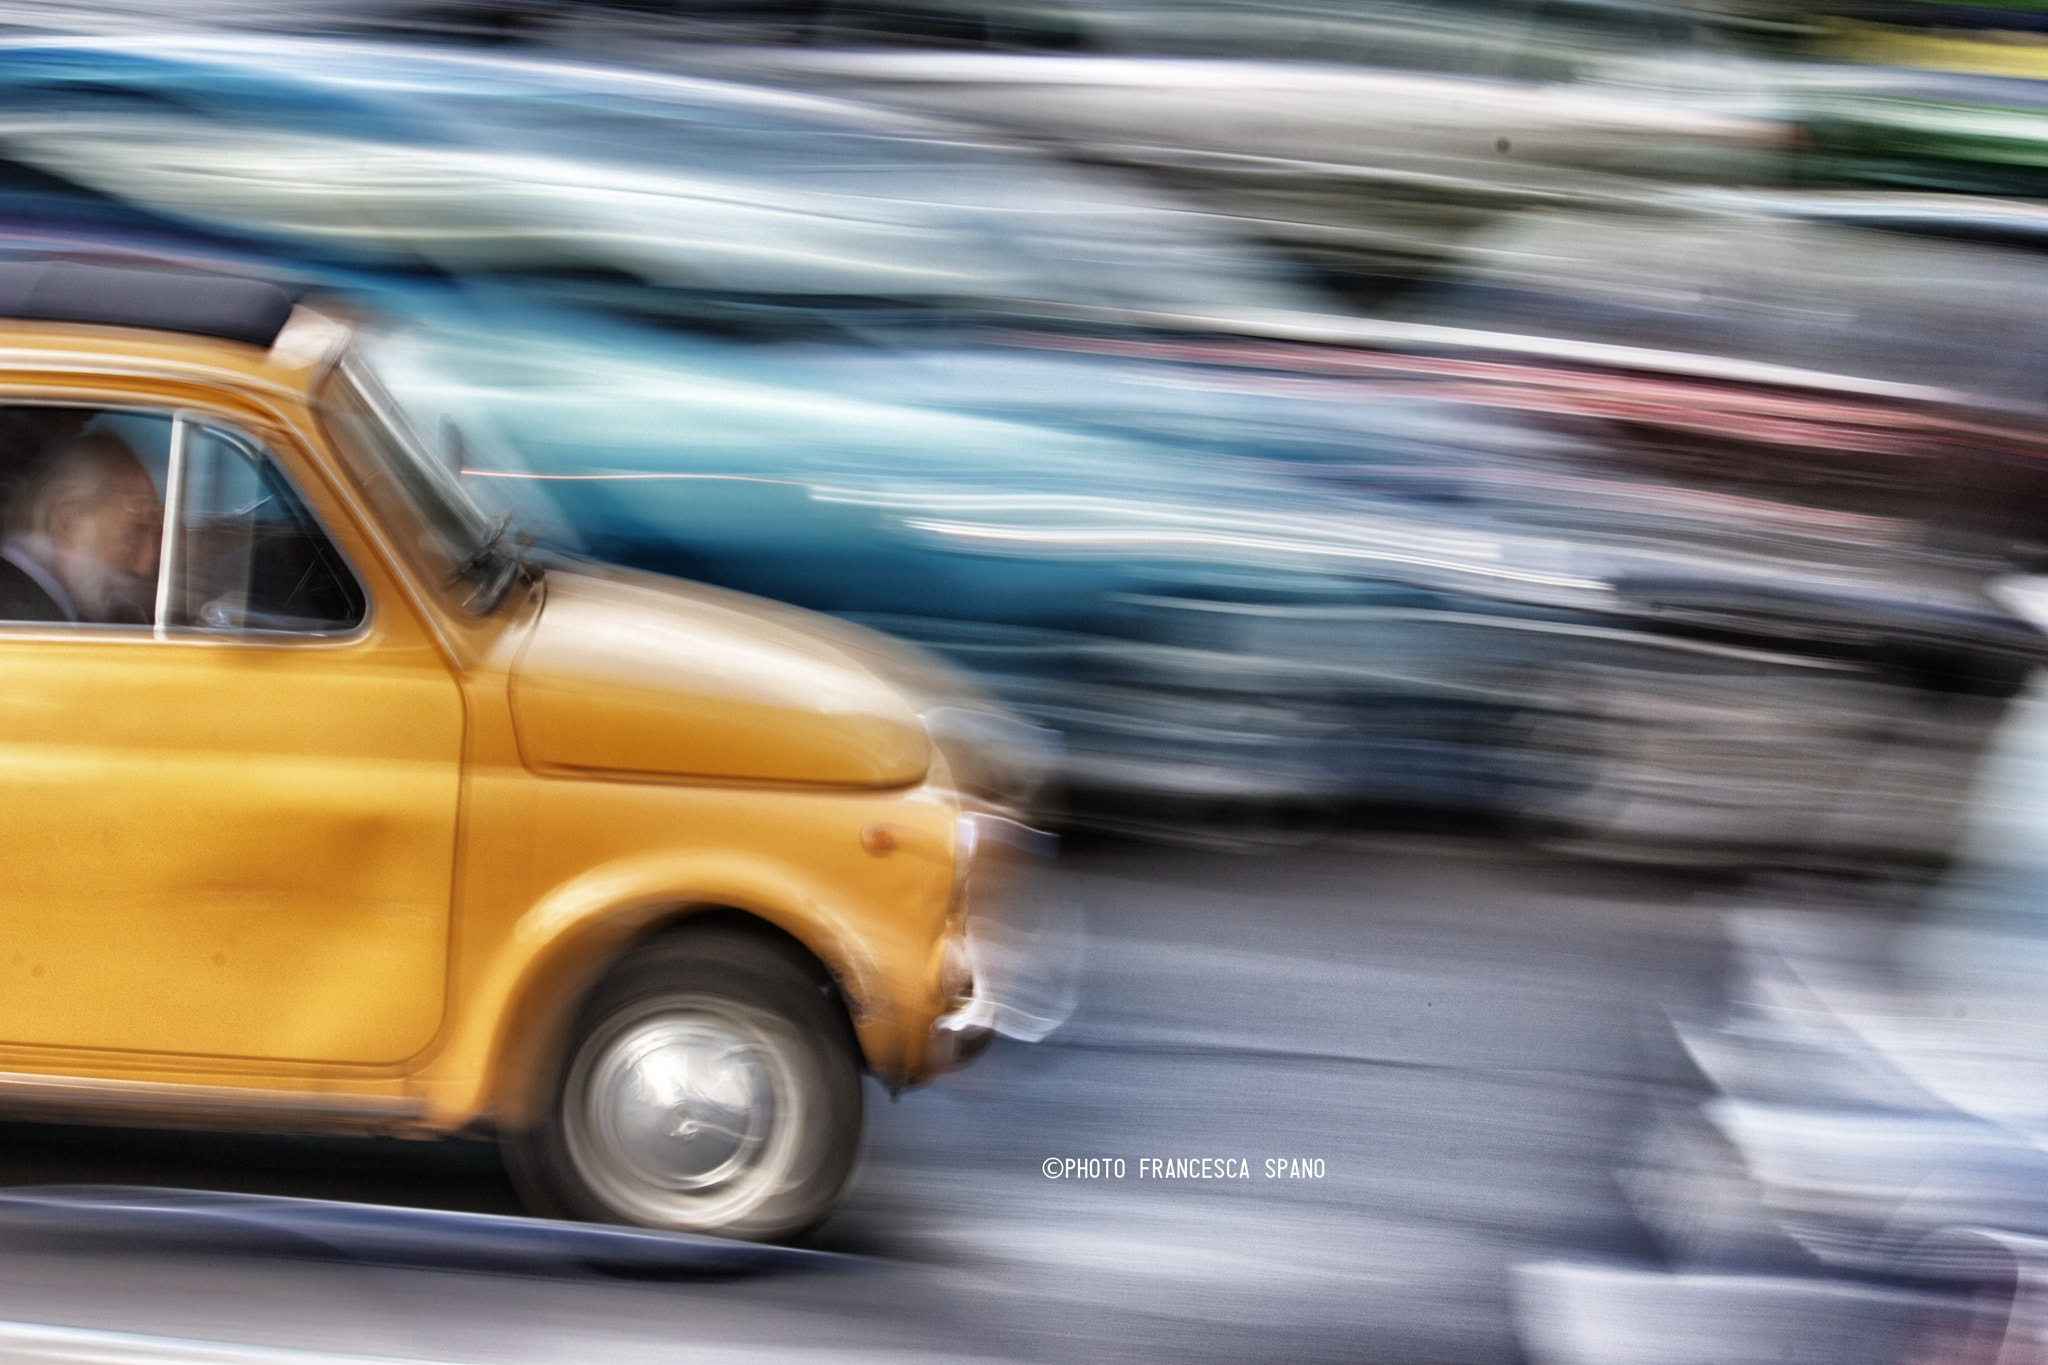 Photograph 500 by Chiccastella Francesca Spano on 500px